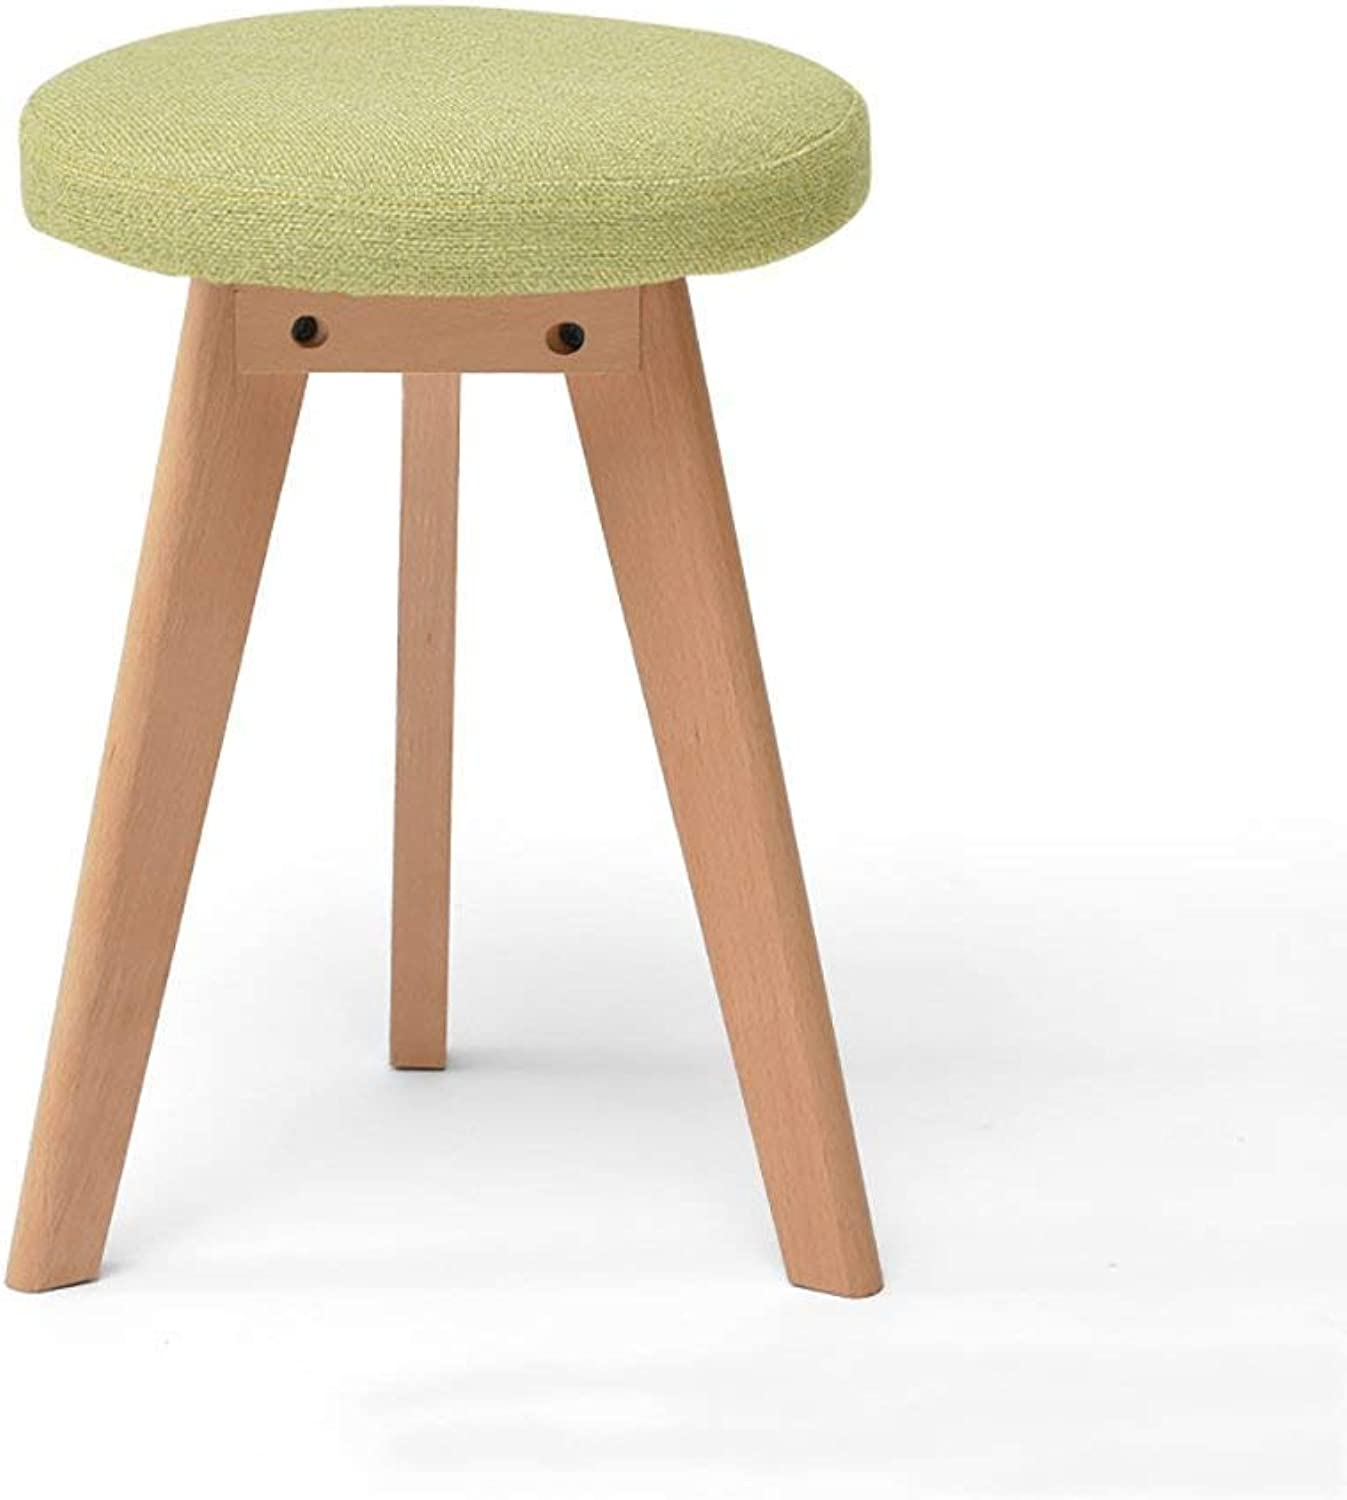 FW Solid Wood Stool, Home Creative Dressing Fashion Short Stool, Fabric Small Bench Dining Table Stool (color   A, Size   One)